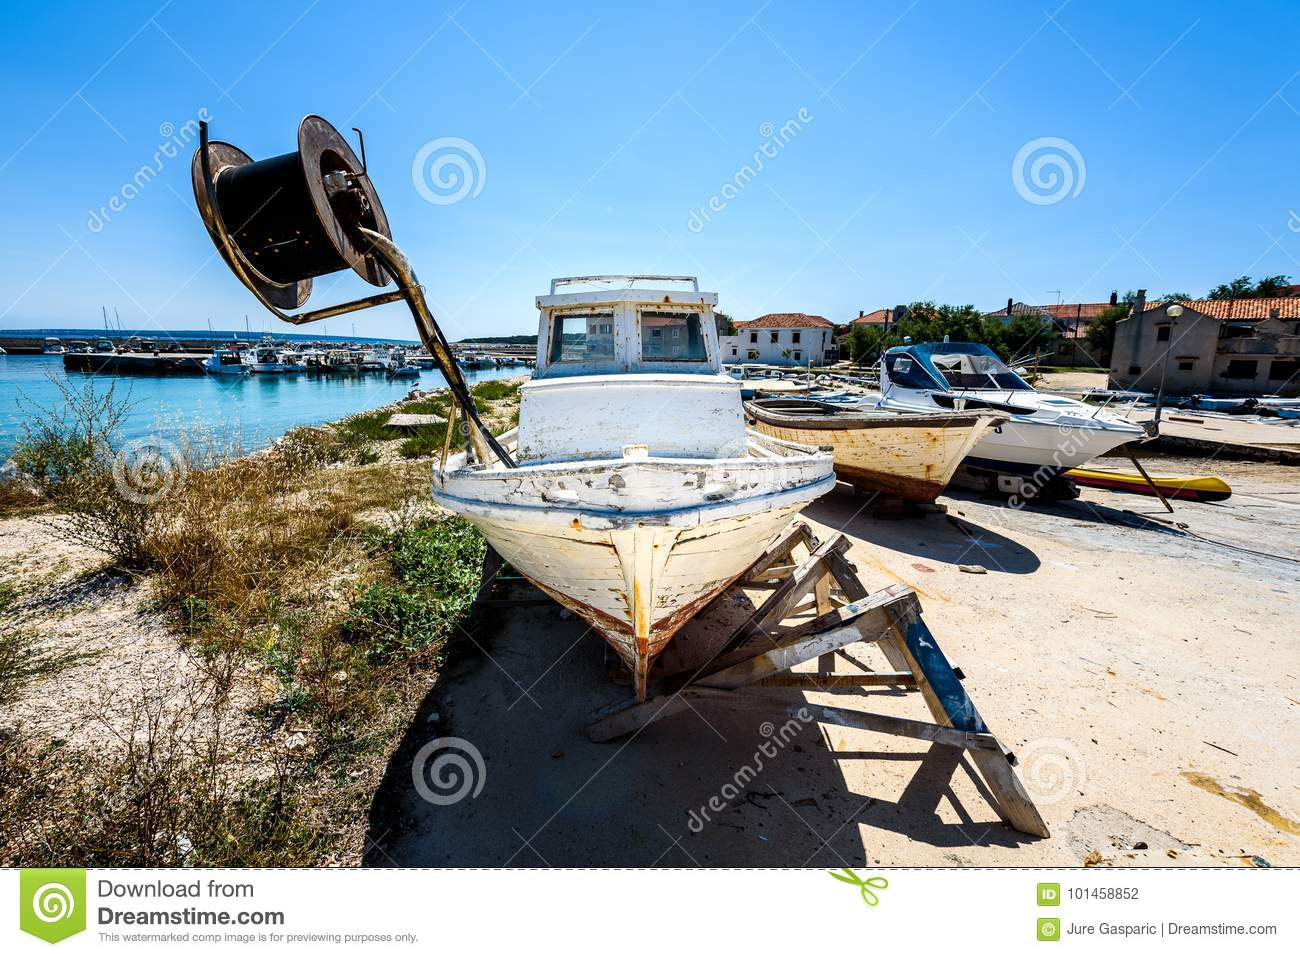 Repair and restoration of old wooden fishing ship or boat.